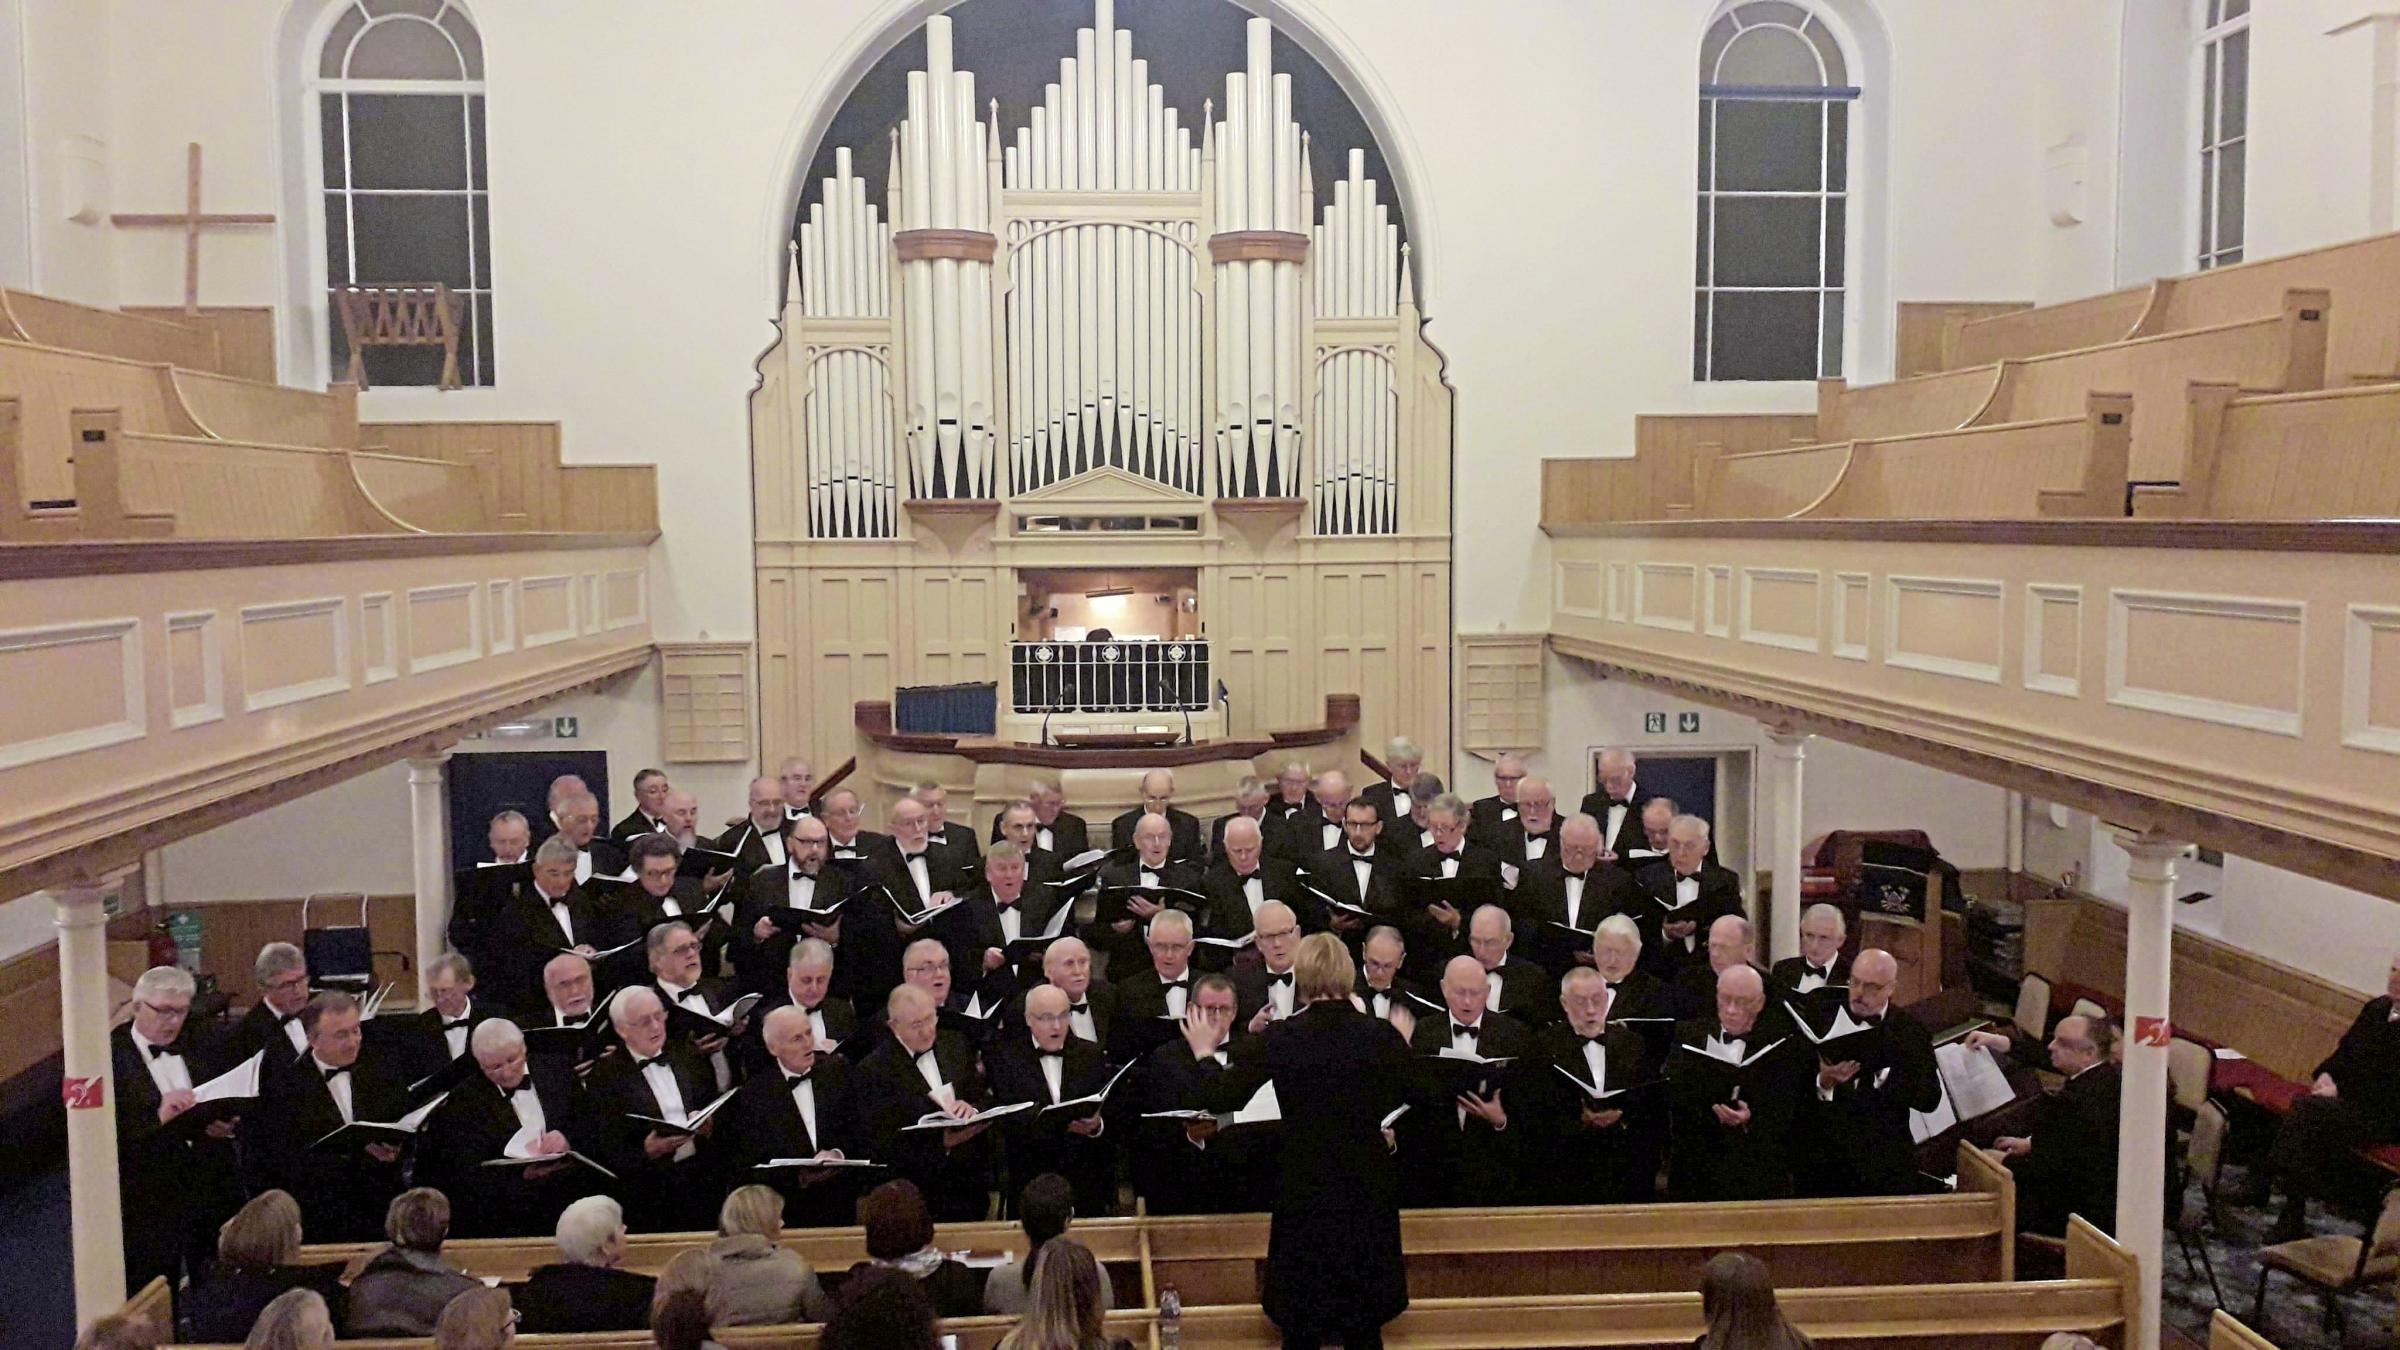 Trelawnyd Male Voice Choir and conductor Ann Atkinson will join for the event in Rhyl this week